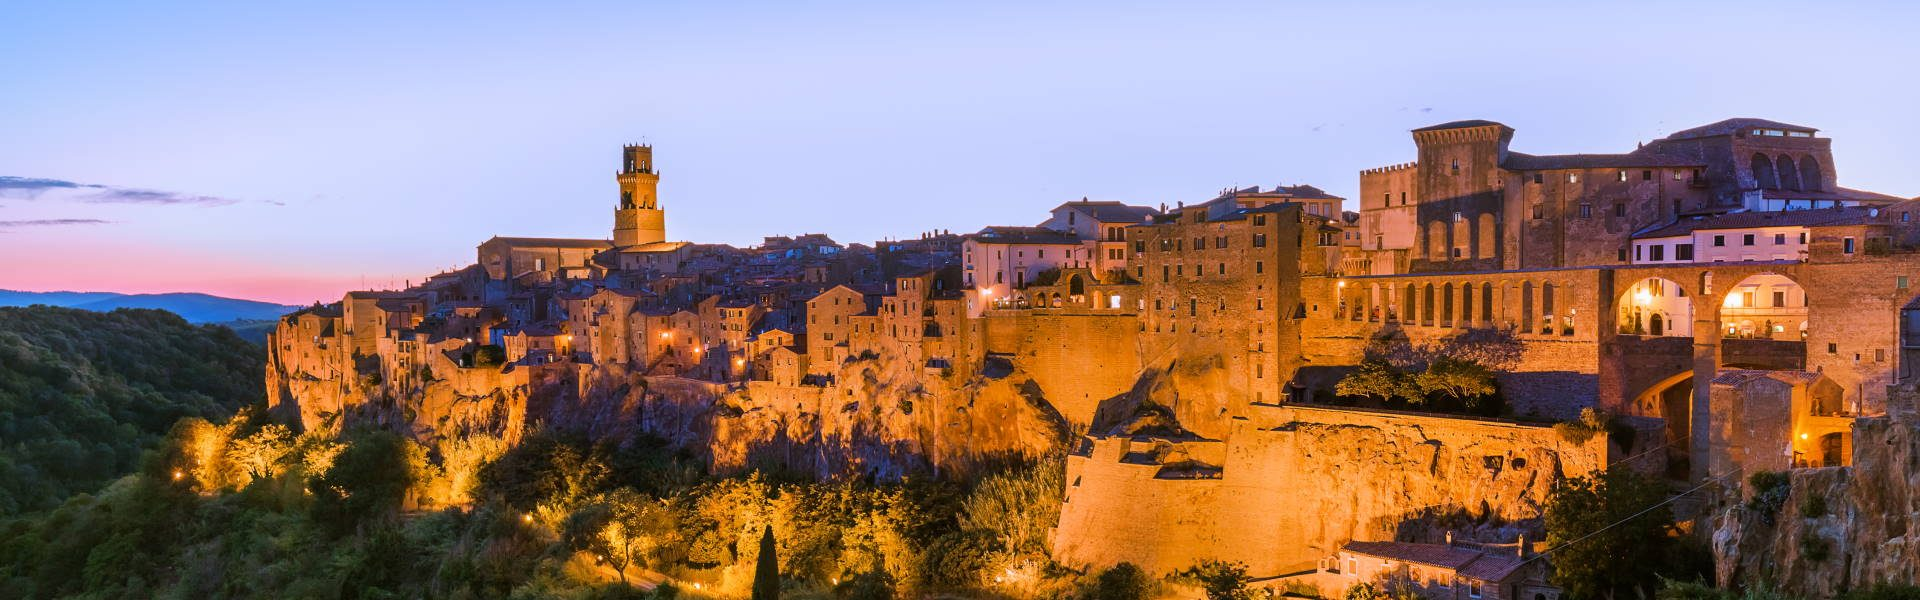 Pitigliano medieval town in Tuscany Italy - architecture background